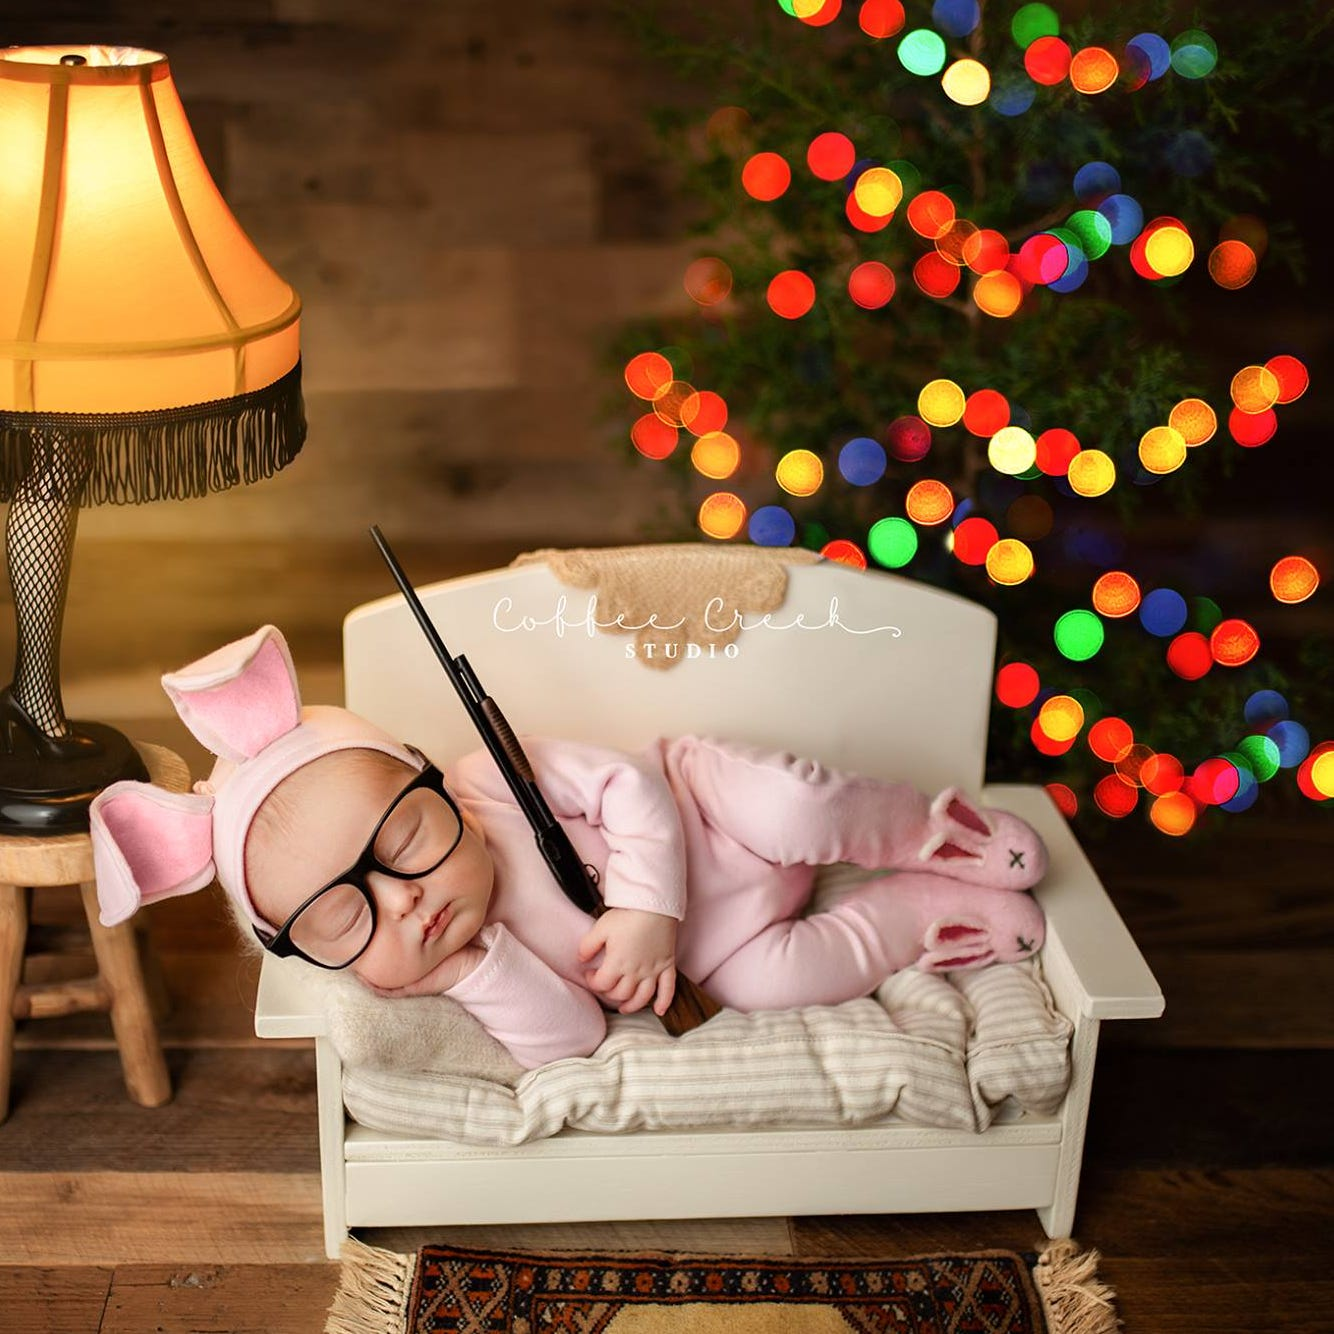 20 important things to remember this holiday season